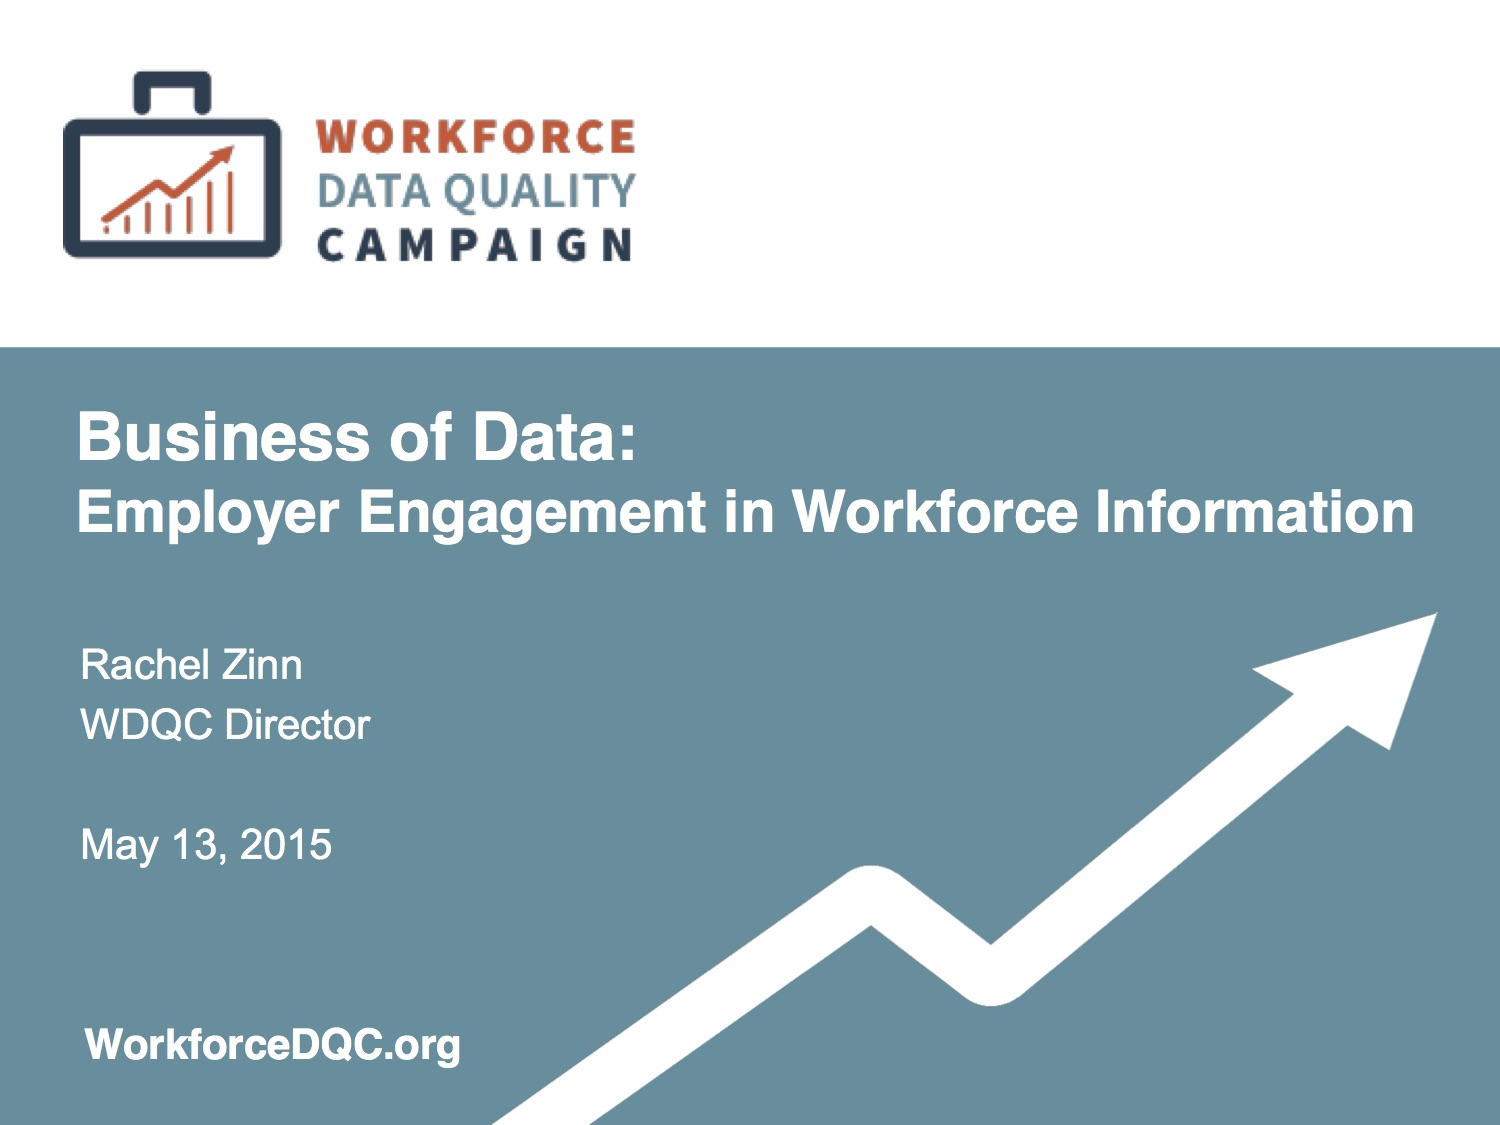 Business of Data: Employer Engagement in Workforce Information